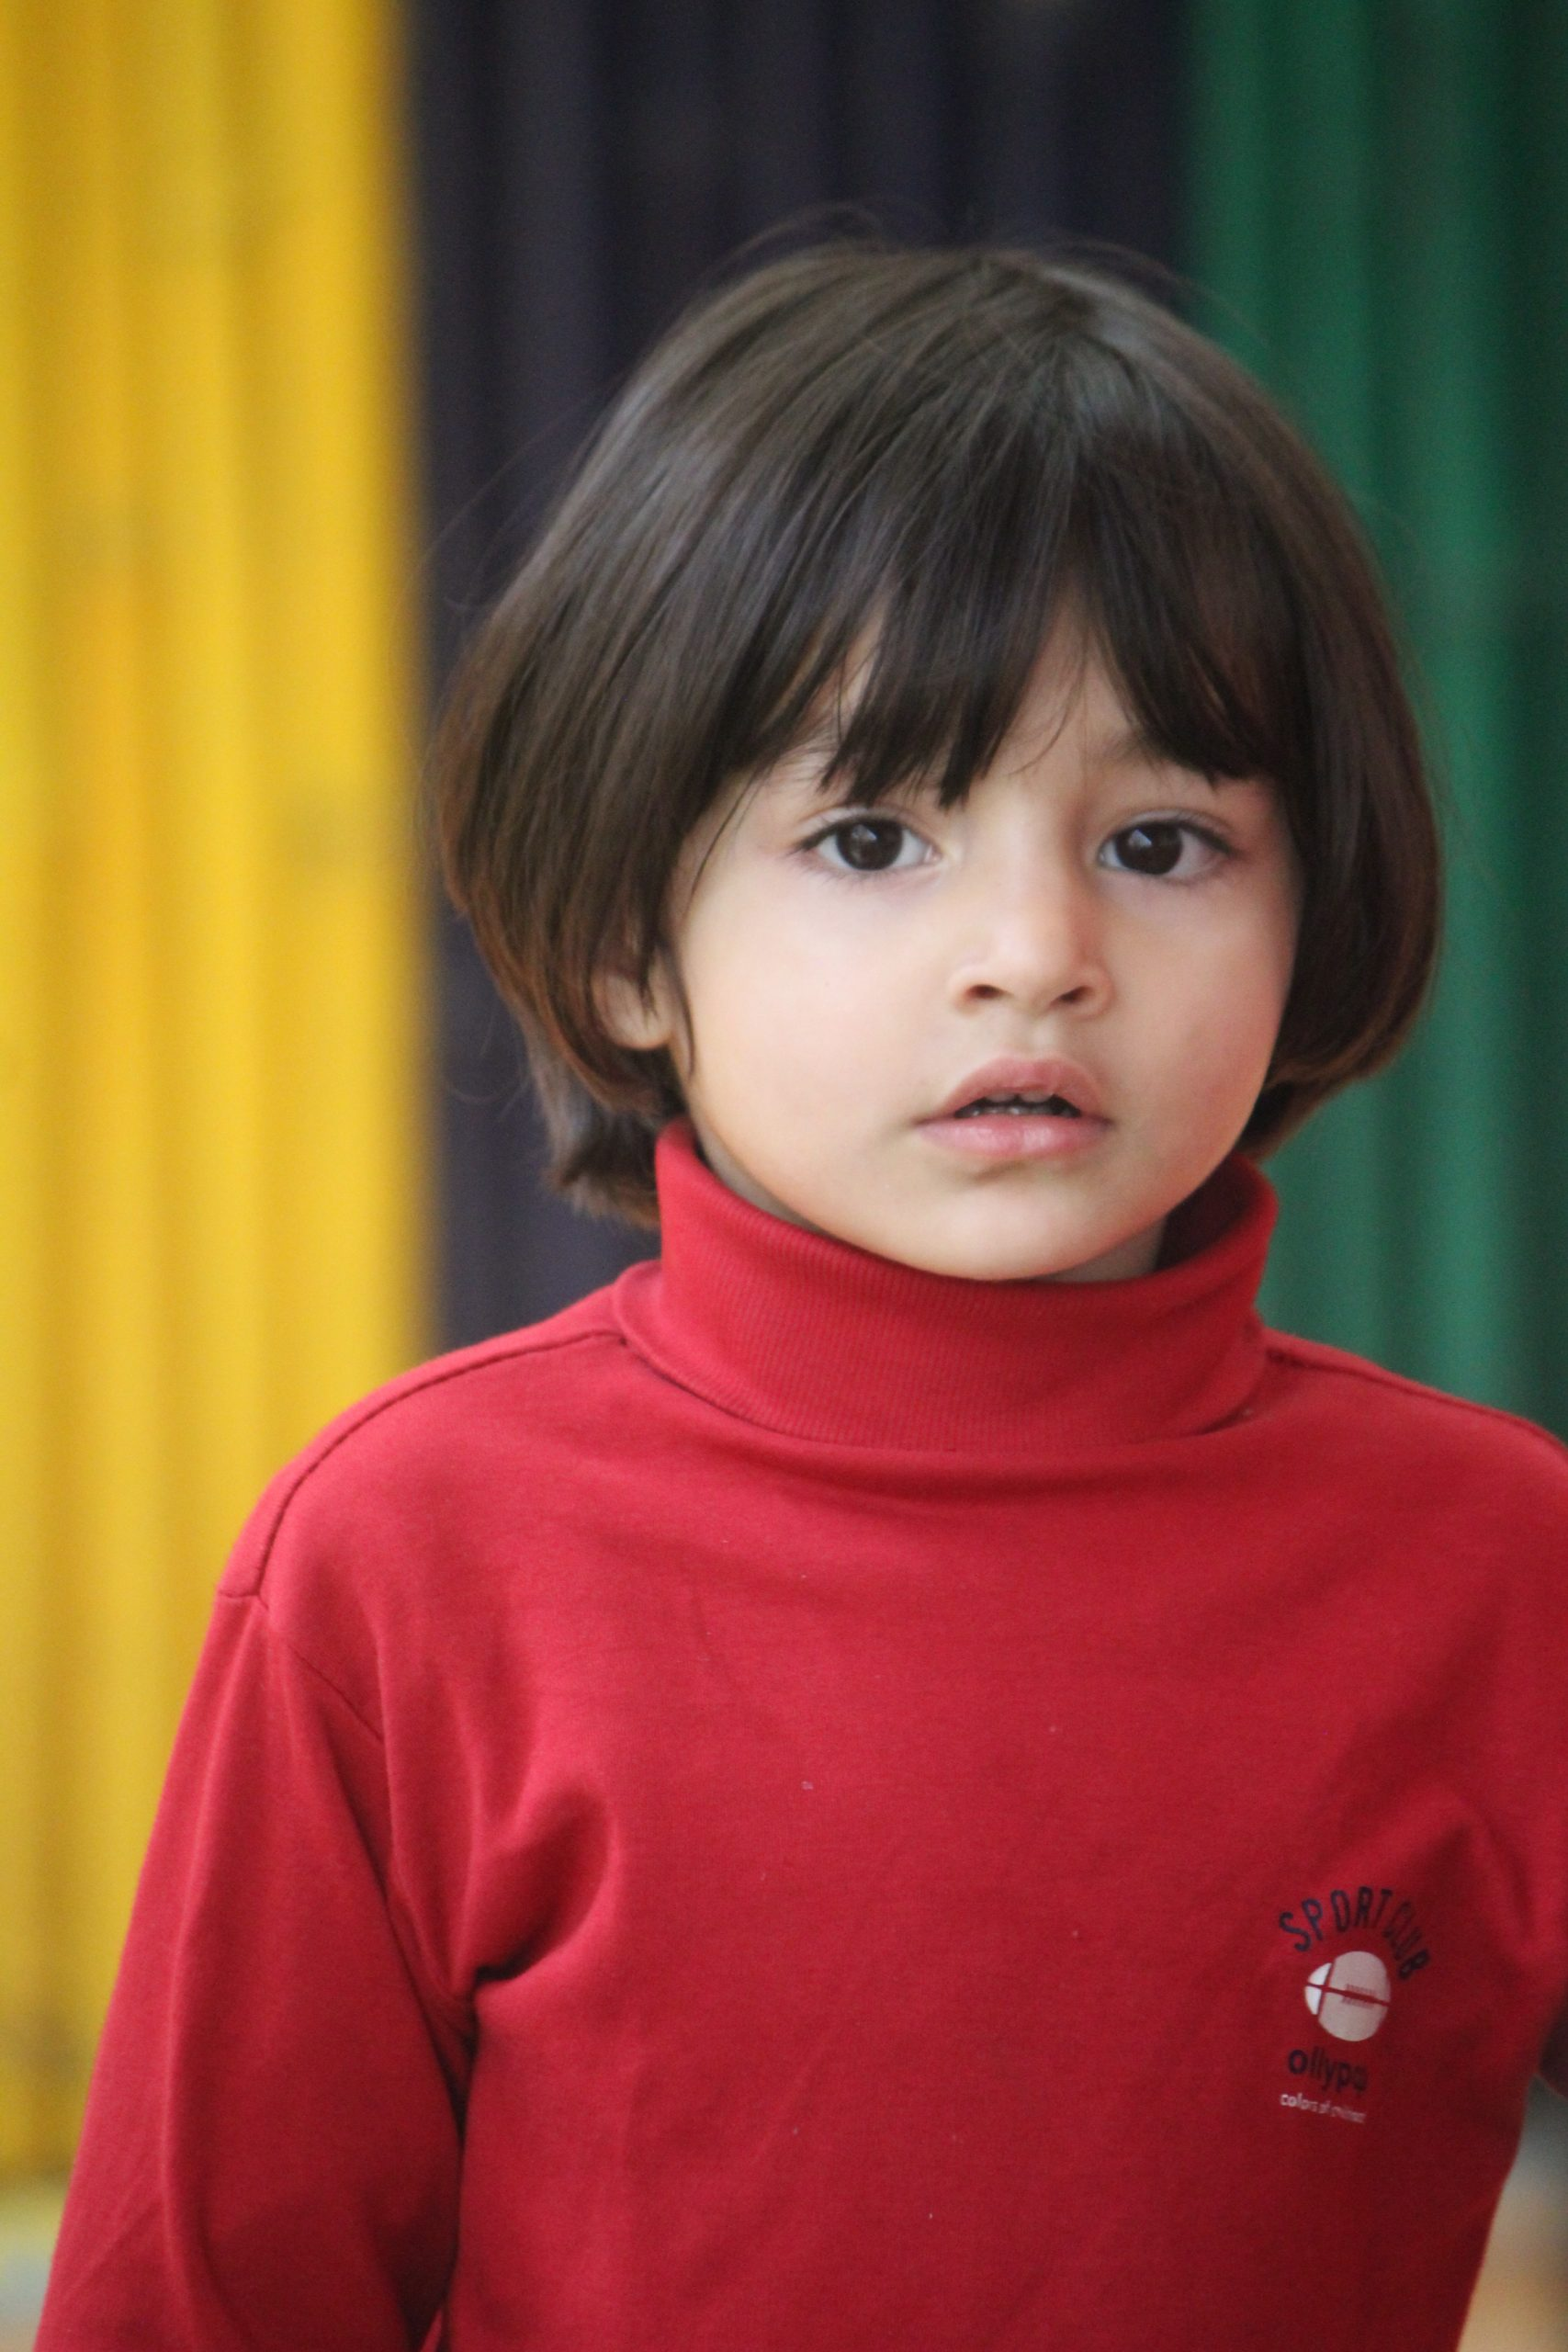 A young kid at school